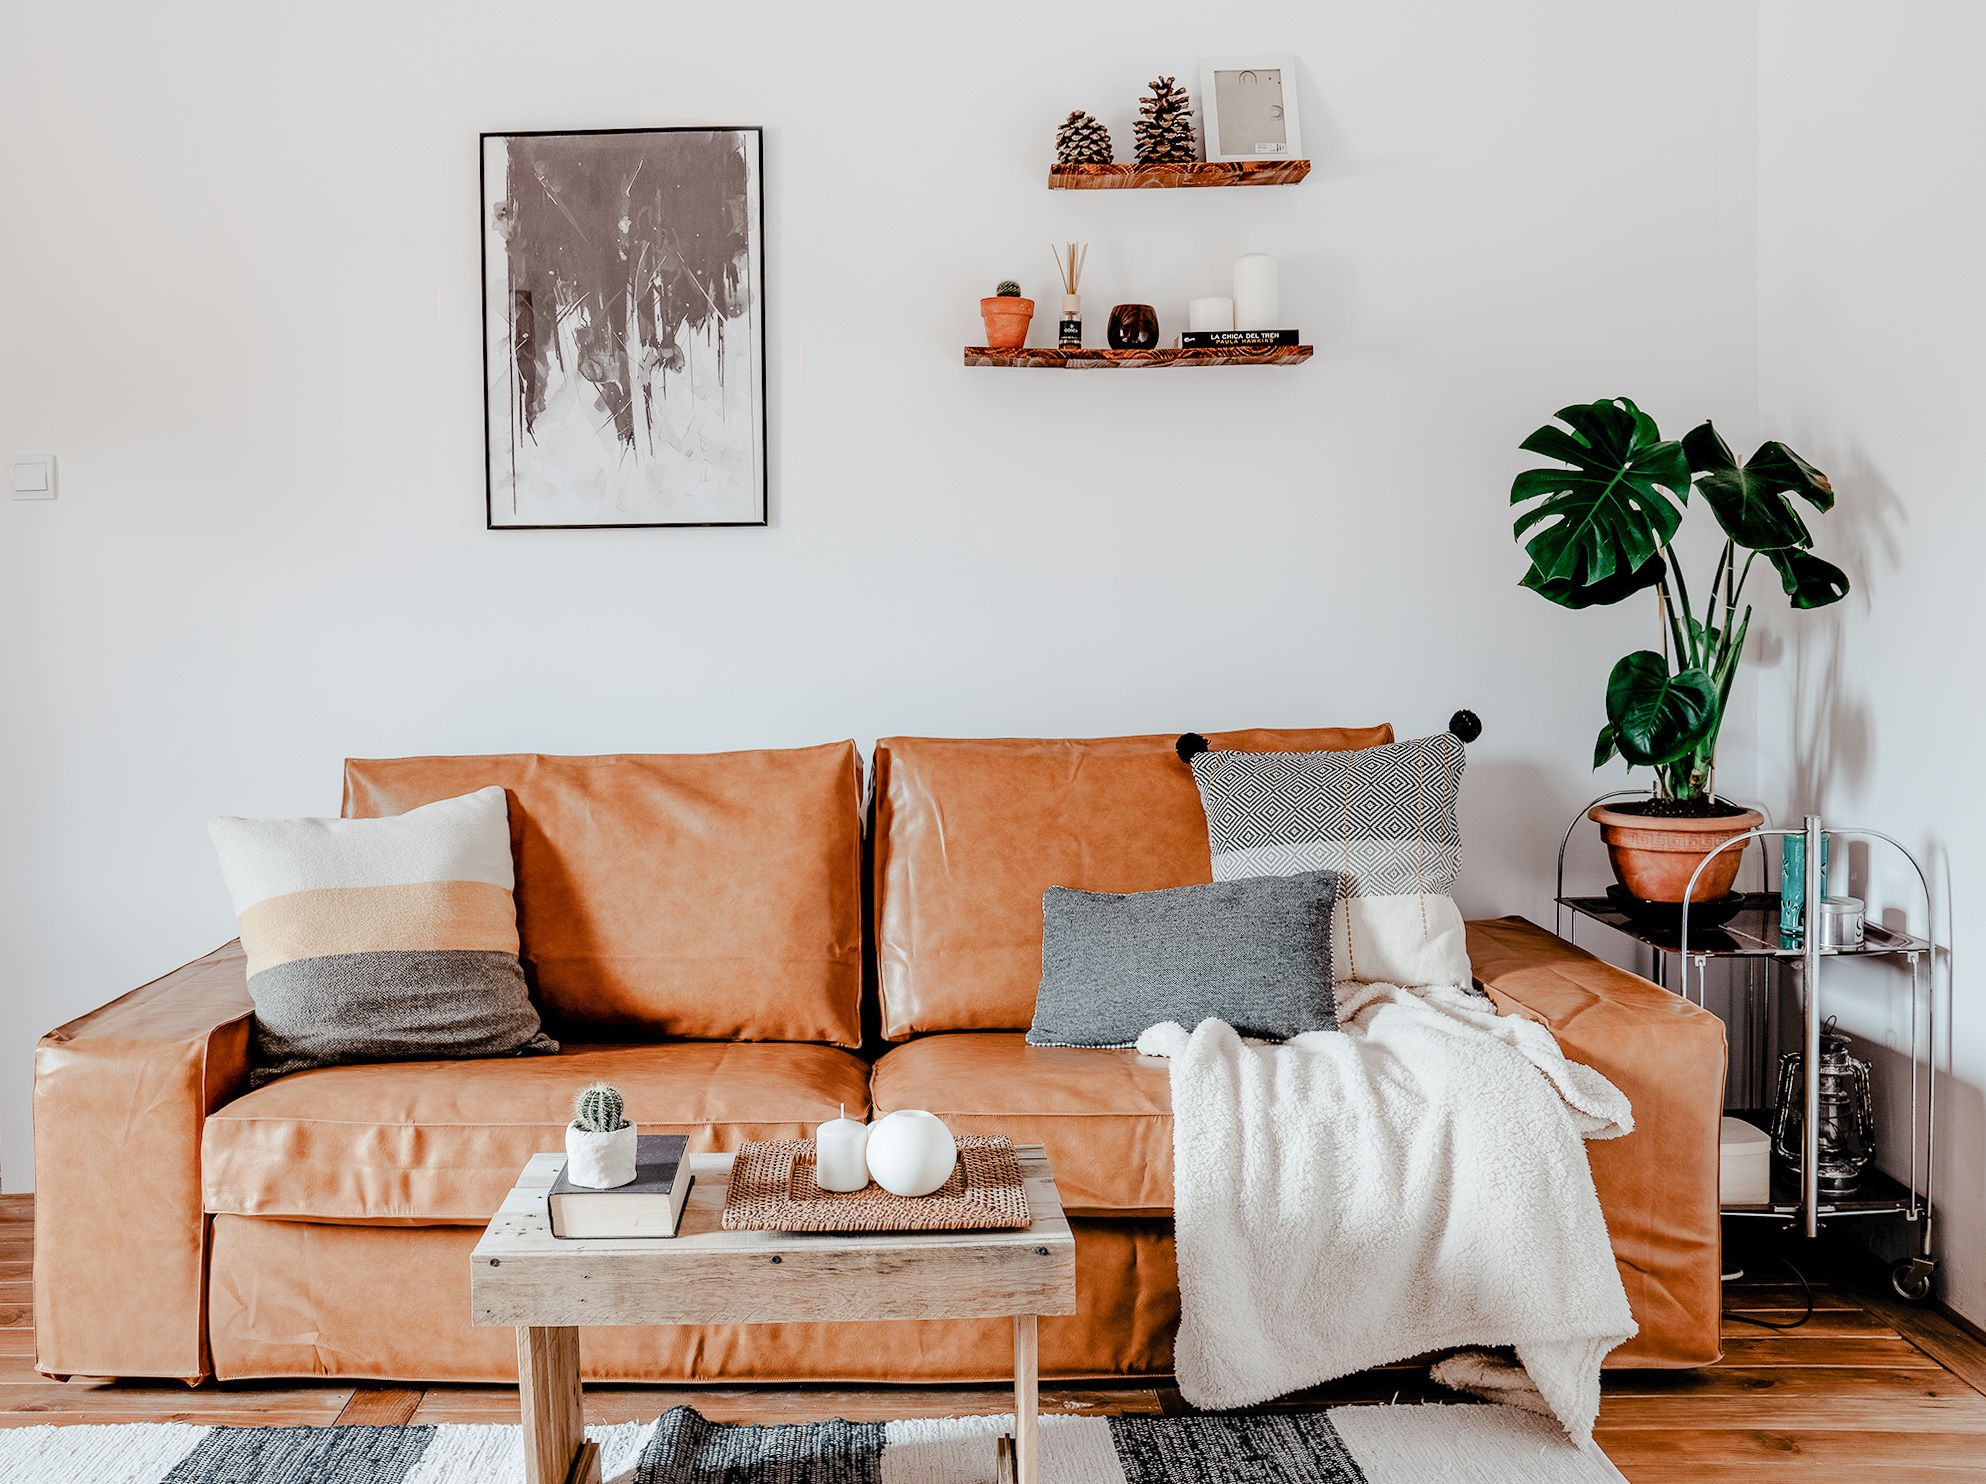 6 Better Alternatives To Throwing Away Your Old Sofa In 2020 Old Sofa Ikea Sofa Sofa Covers